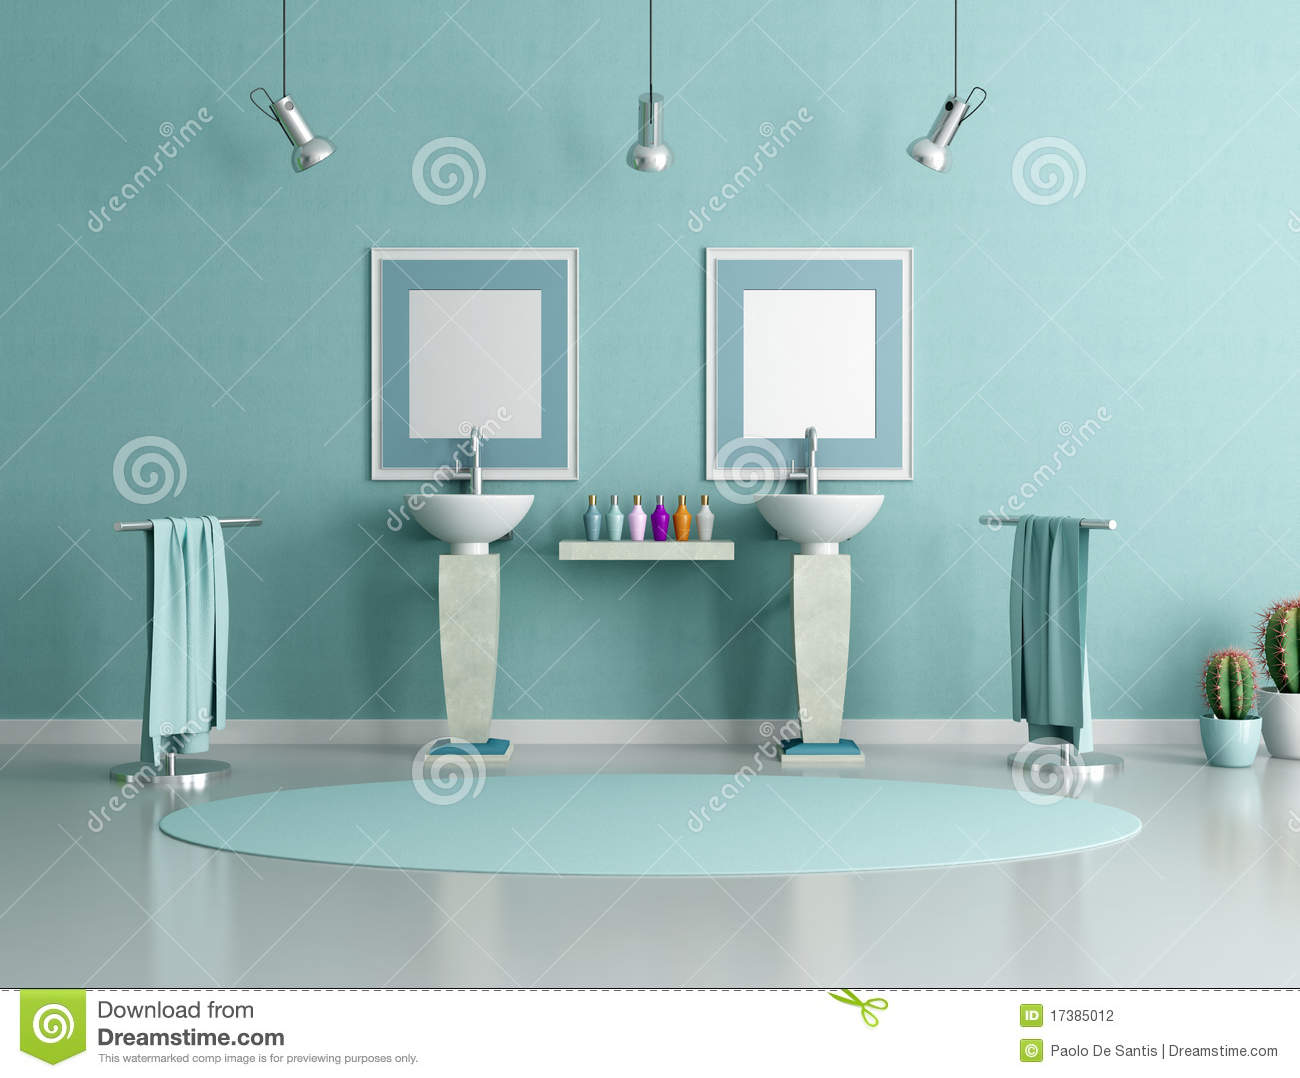 Bagno design dream ~ canlic for .